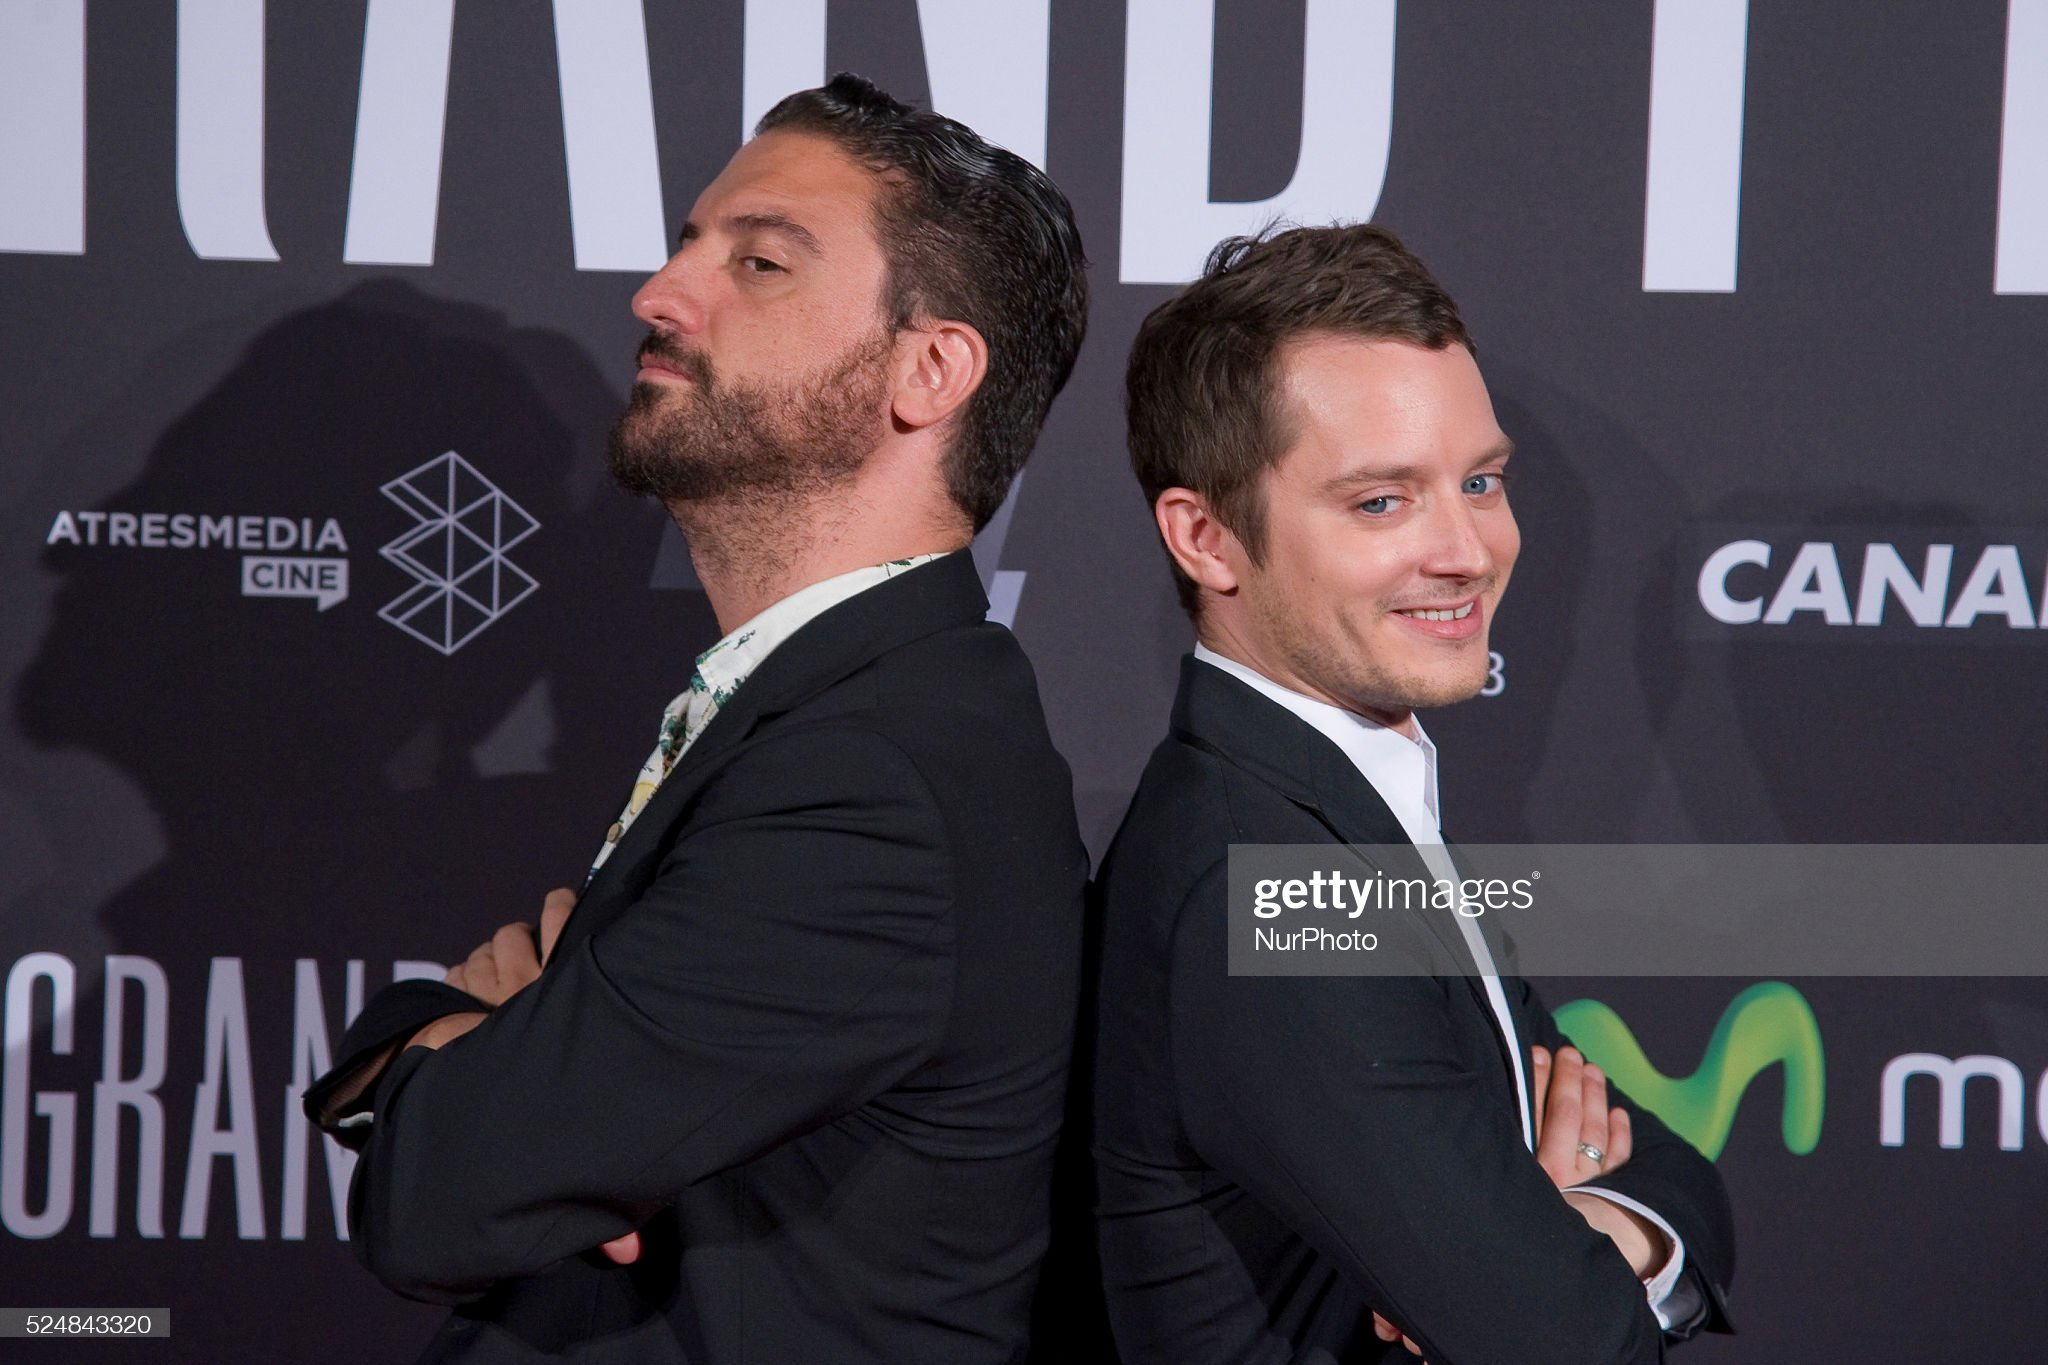 ¿Cuánto mide Eugenio Mira? - Altura Director-and-lead-actor-elijah-wood-madrid-visit-to-attend-the-of-picture-id524843320?s=2048x2048